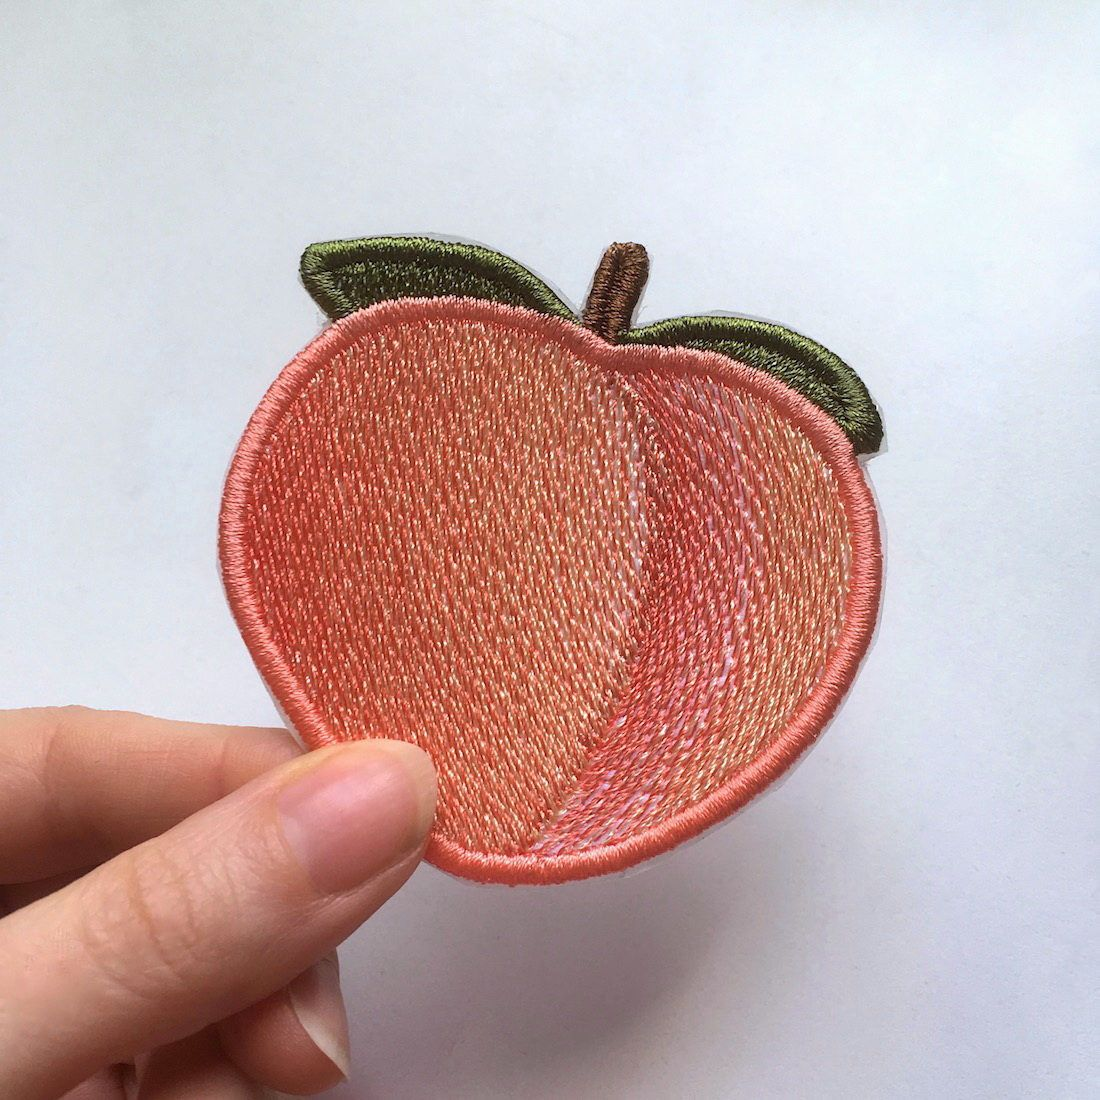 4bc5be014 Peach Emoji Embroidered Patch jacket patch bag sew on patch jeans t-shirt  sweatshirt hat iron on patch emoji pin emblem fruit patch